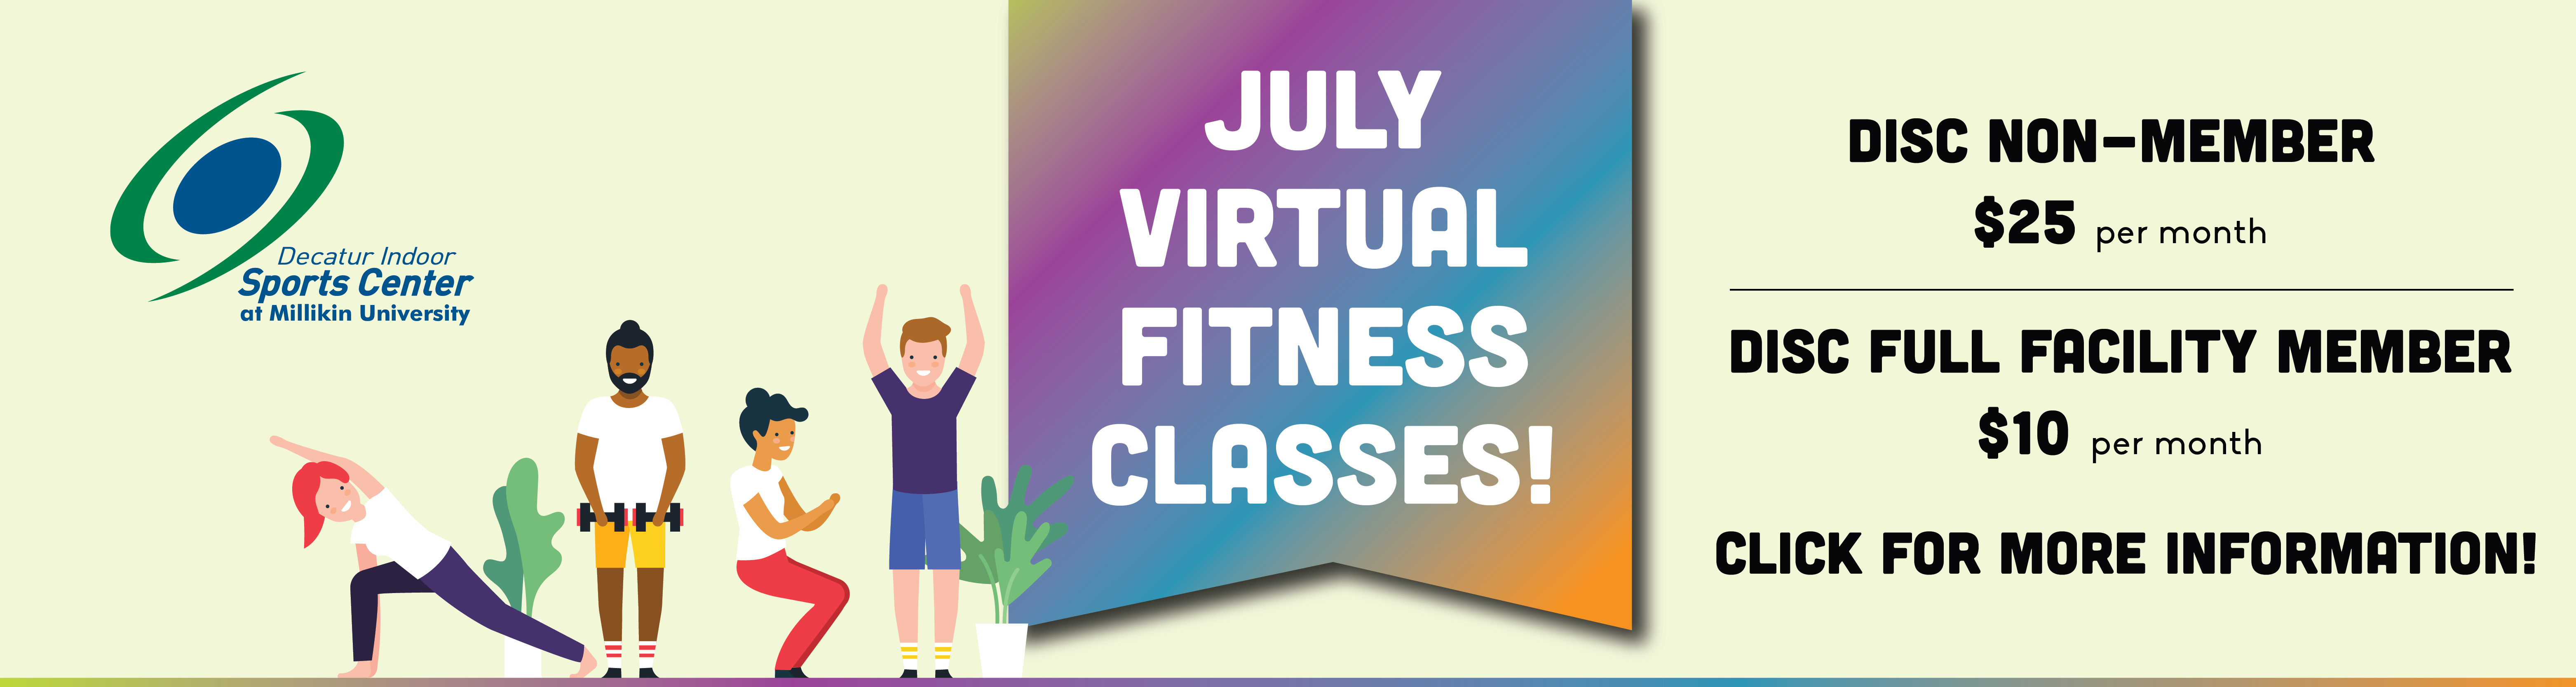 July-VirtualFitness_Slider-01